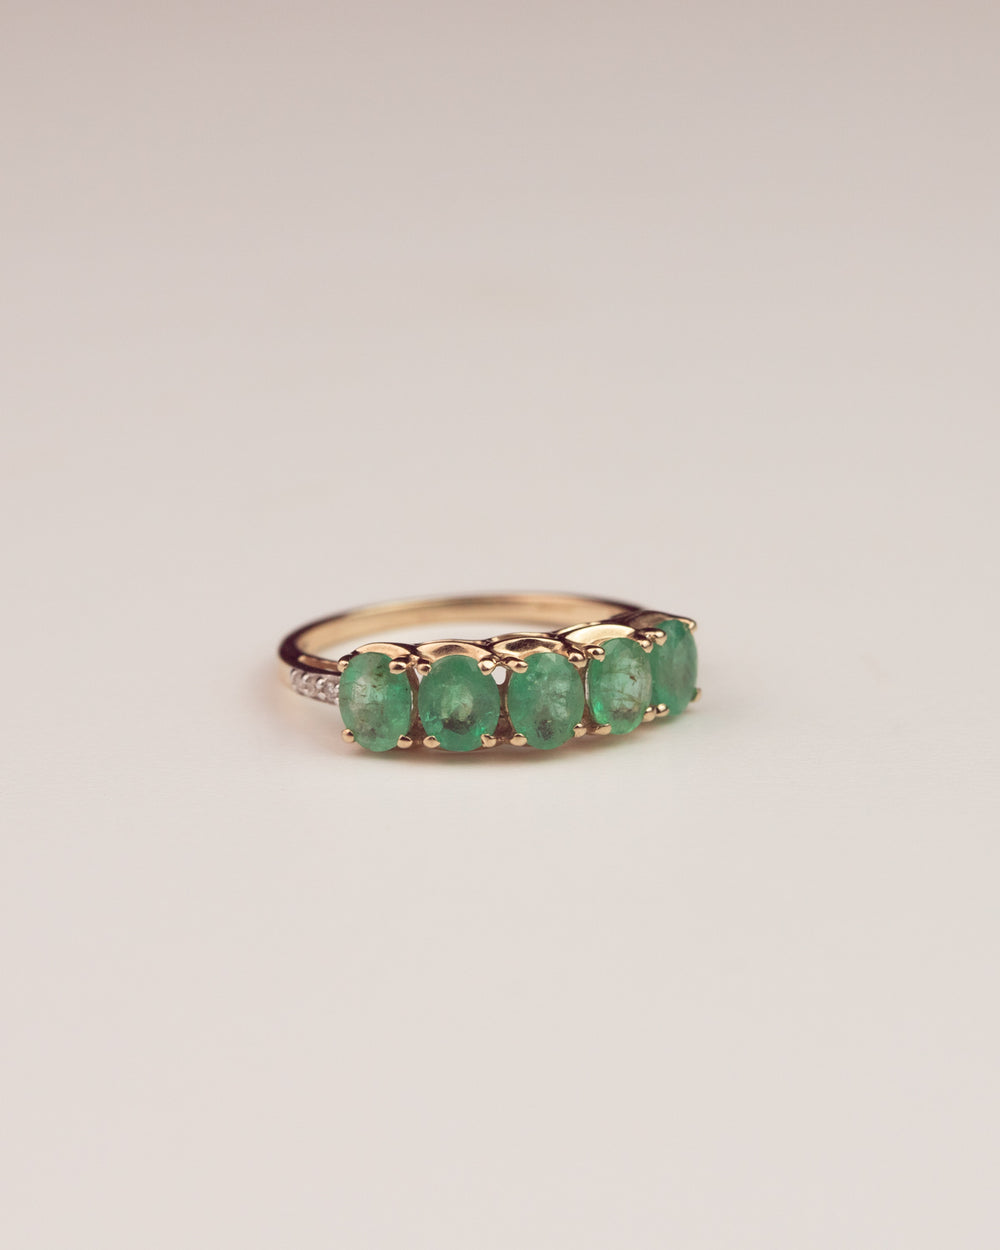 Maude 9ct Gold Emerald & Diamond Ring